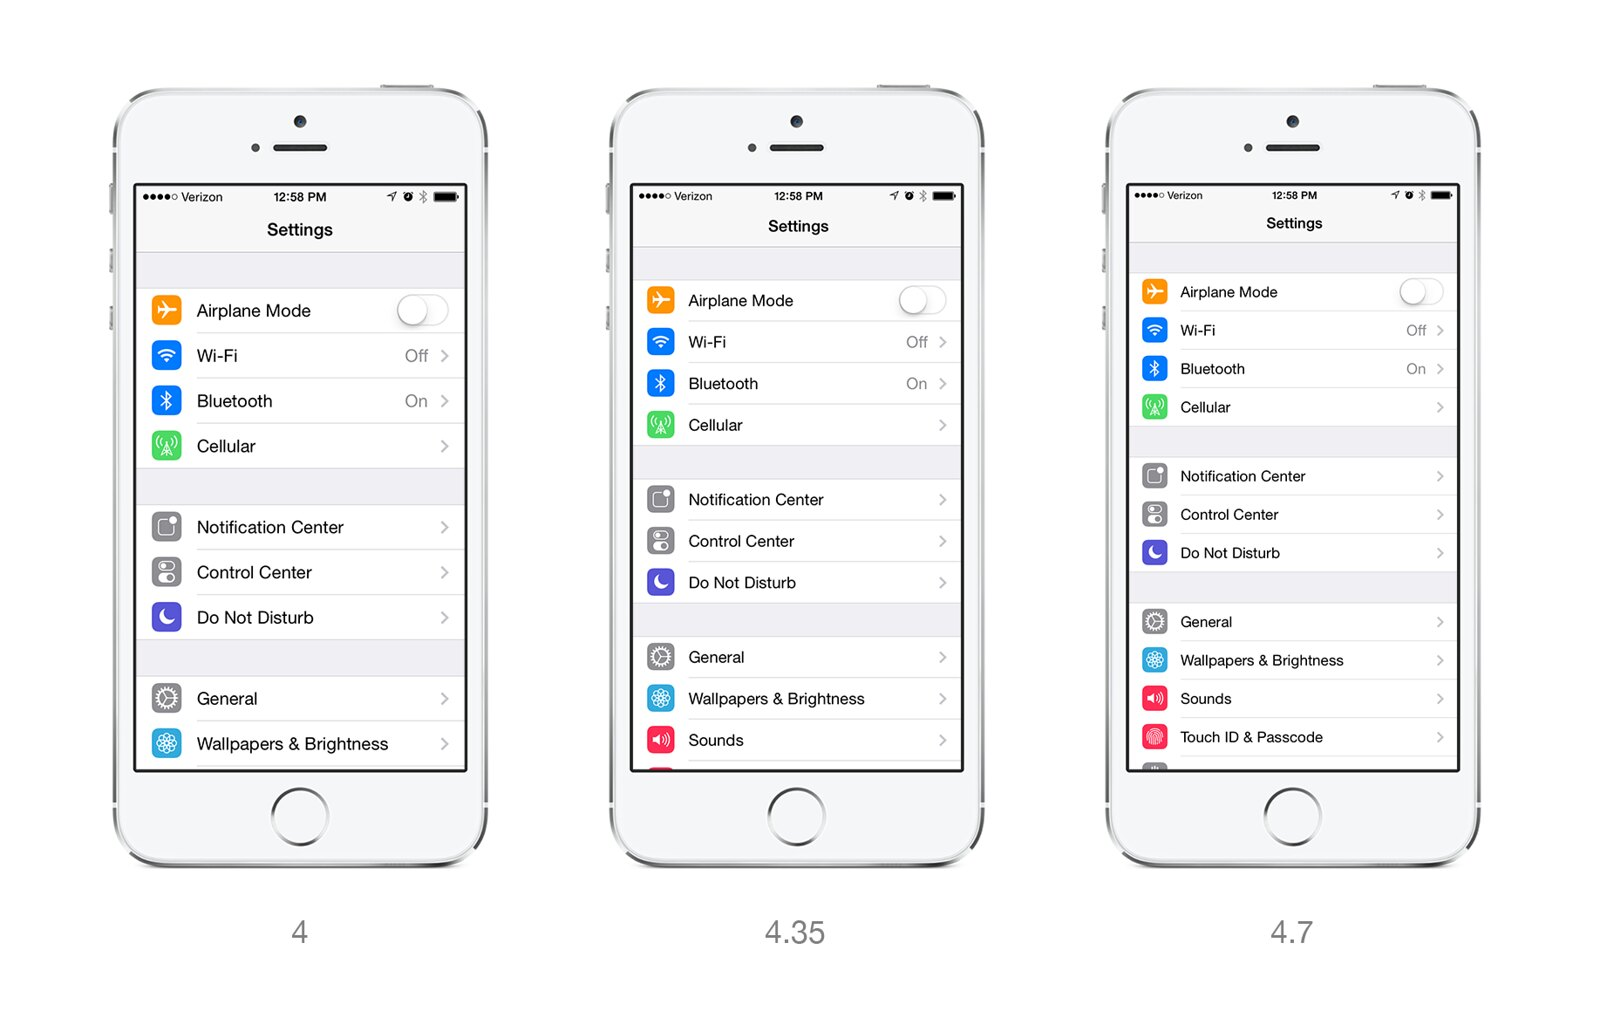 4.7 inch iPhone 6 scaled resolutions